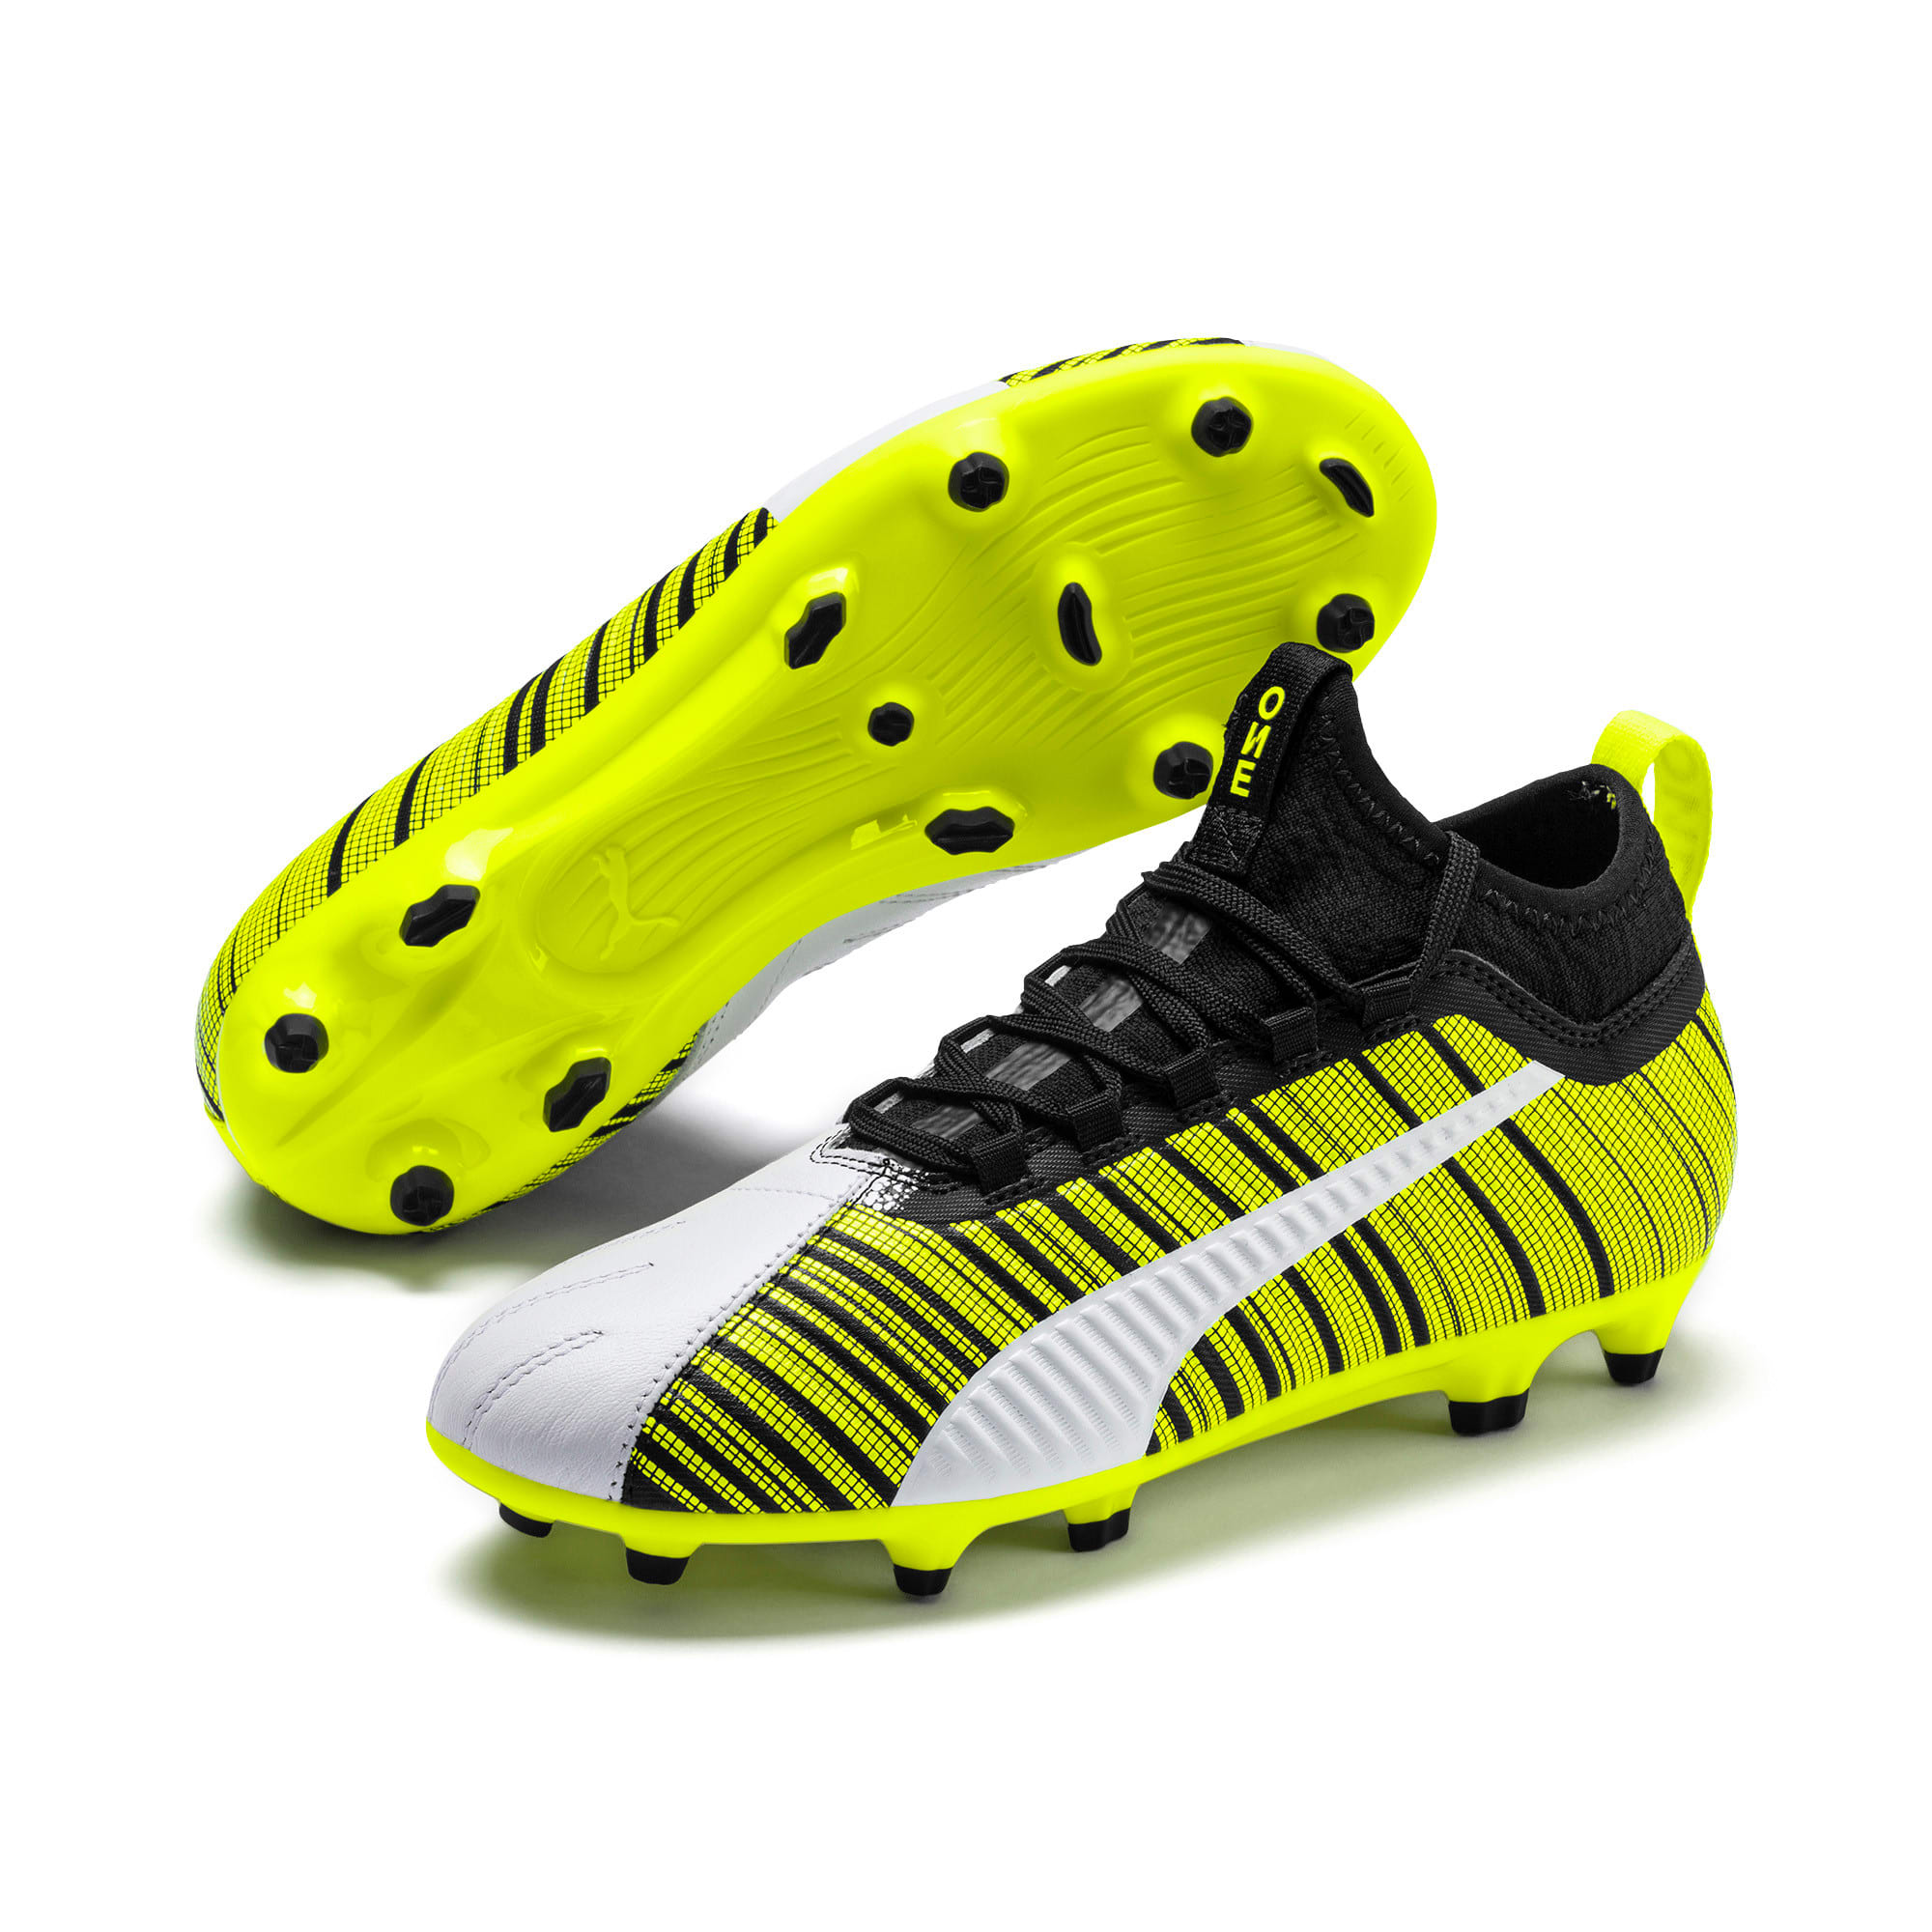 PUMA ONE 5.4 Youth Football Boots, White-Black-Yellow Alert, large